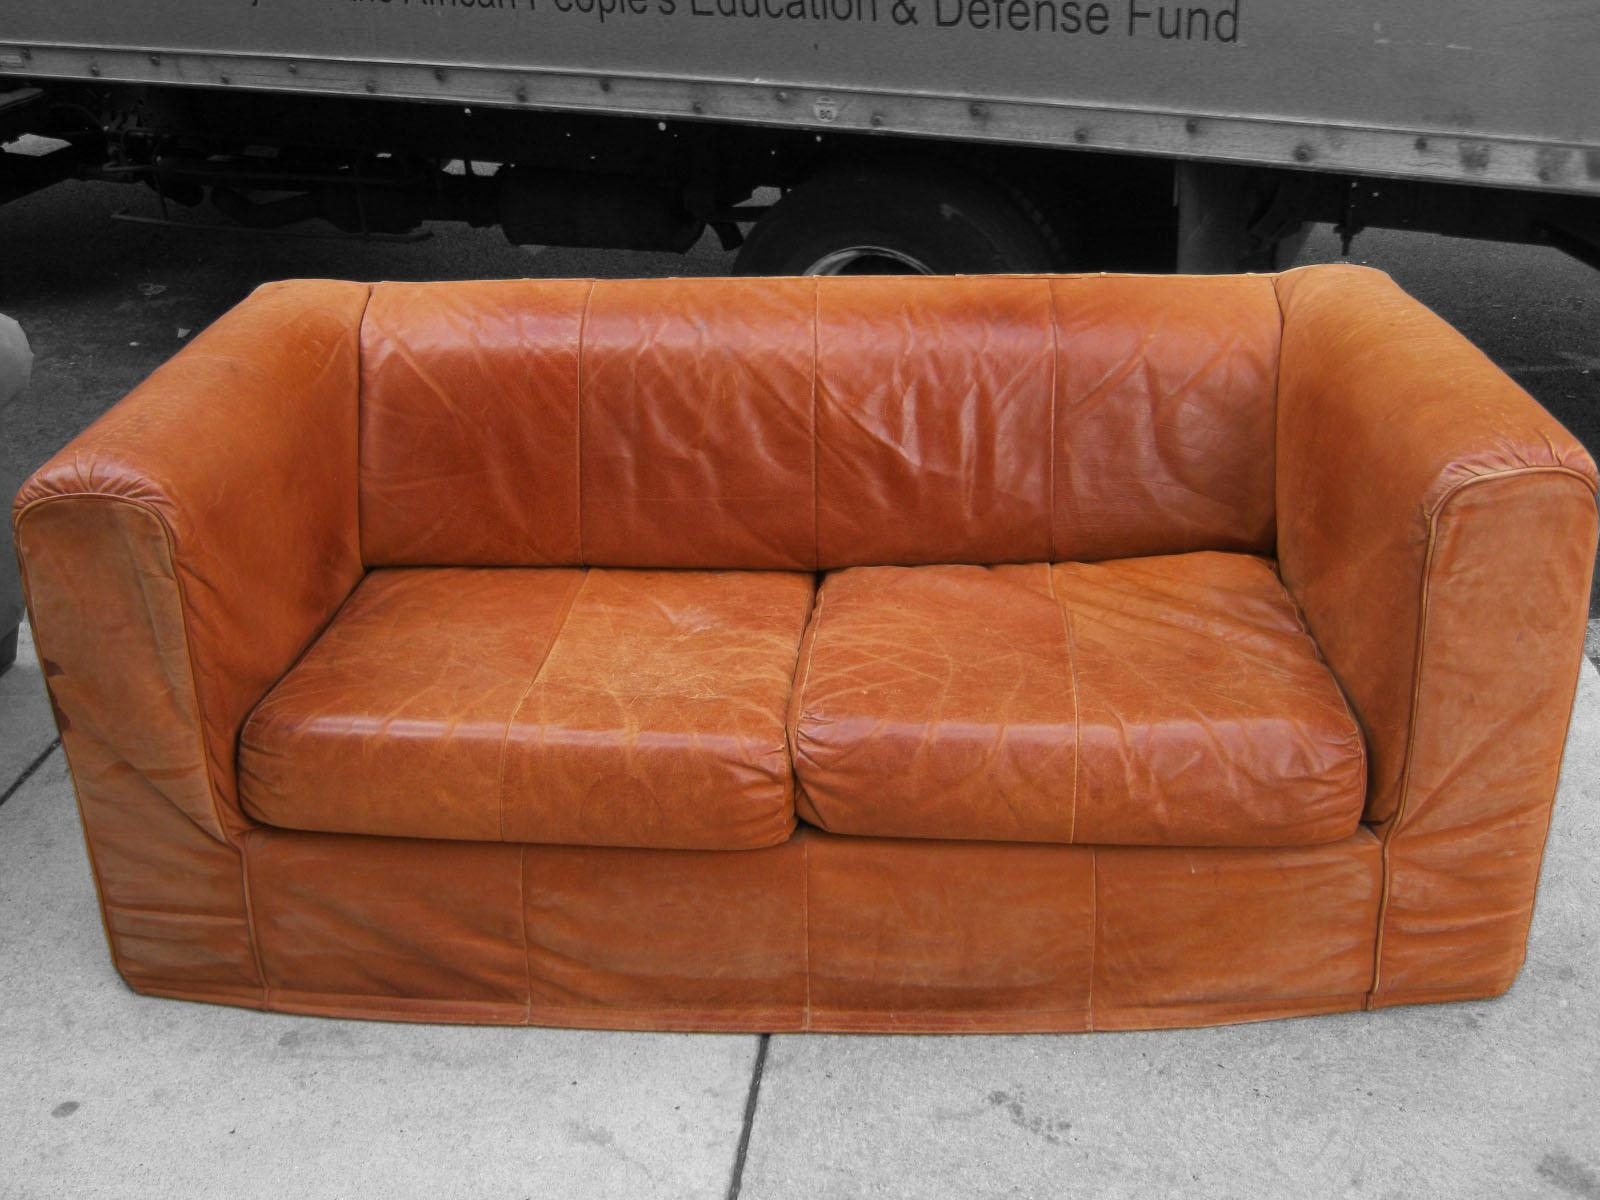 2018 latest camel colored leather sofas sofa ideas for Leather couch